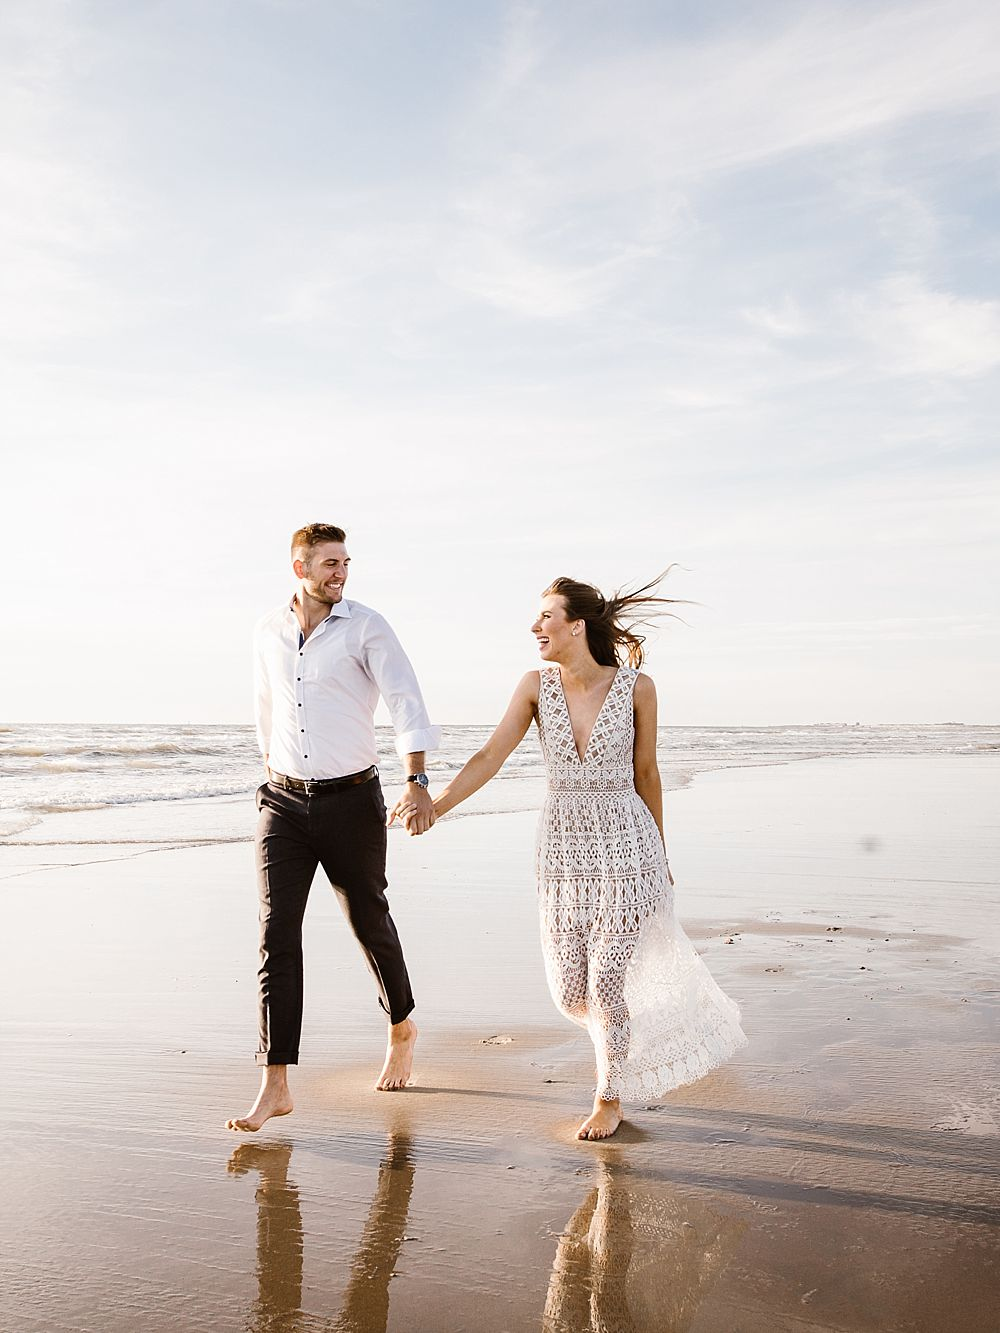 CP 118 - Chloe & Philipp - A Classy Engagement Session on the Beach